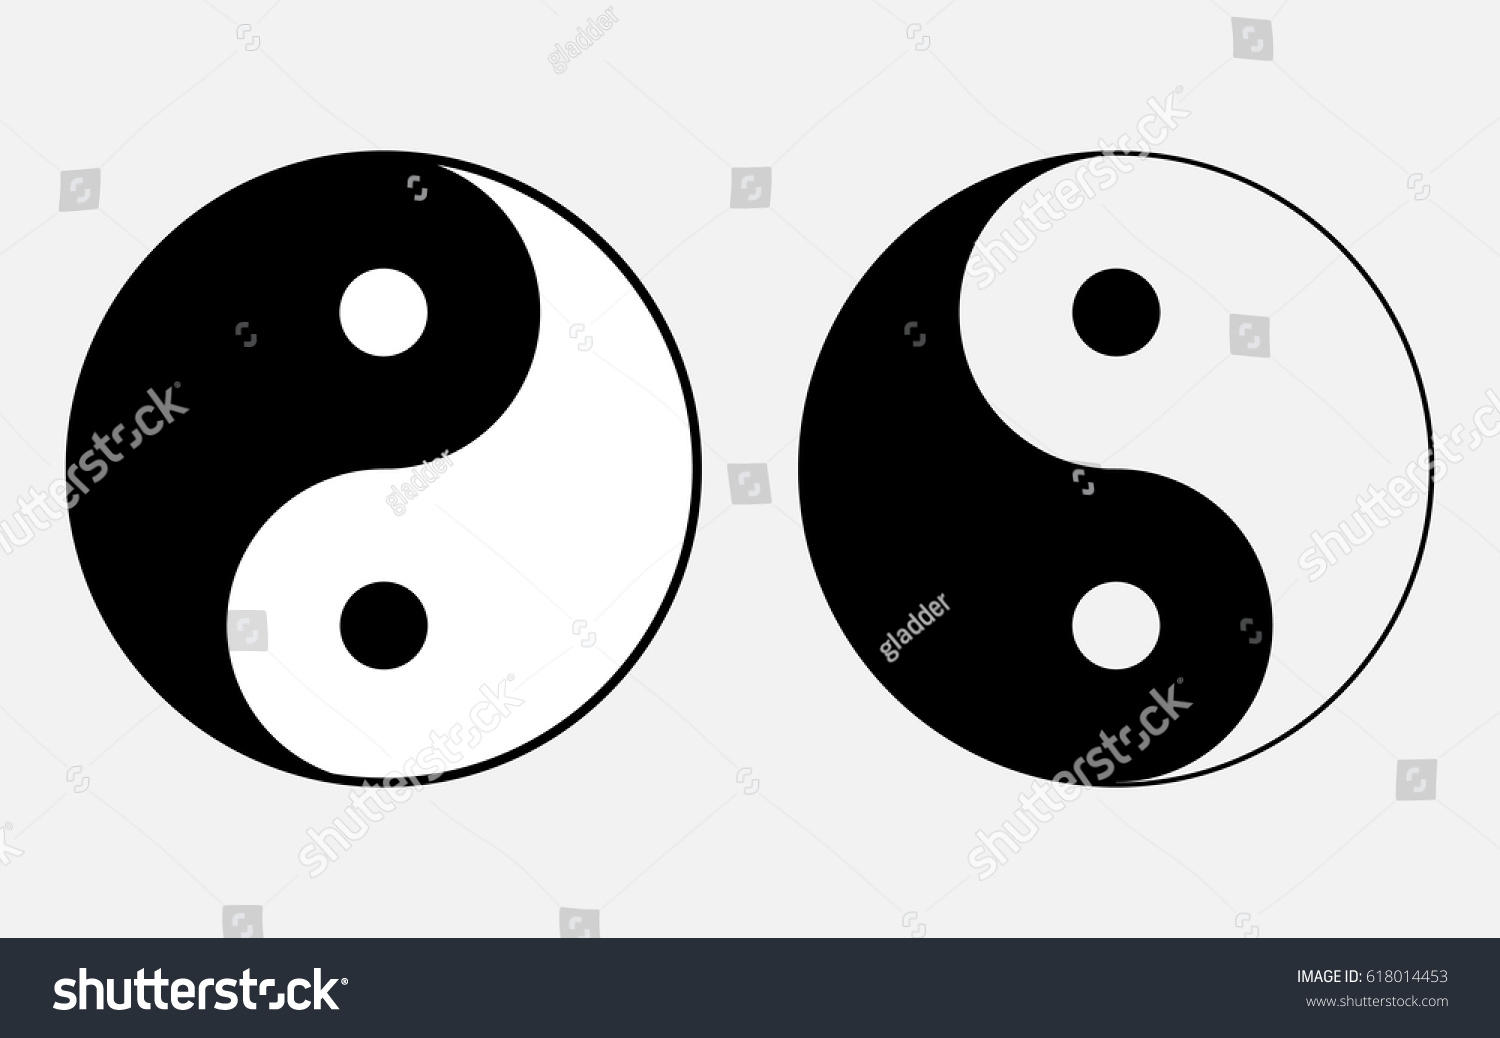 Vector Illustration Sign Chinese Philosophy Symbol Stock Vector